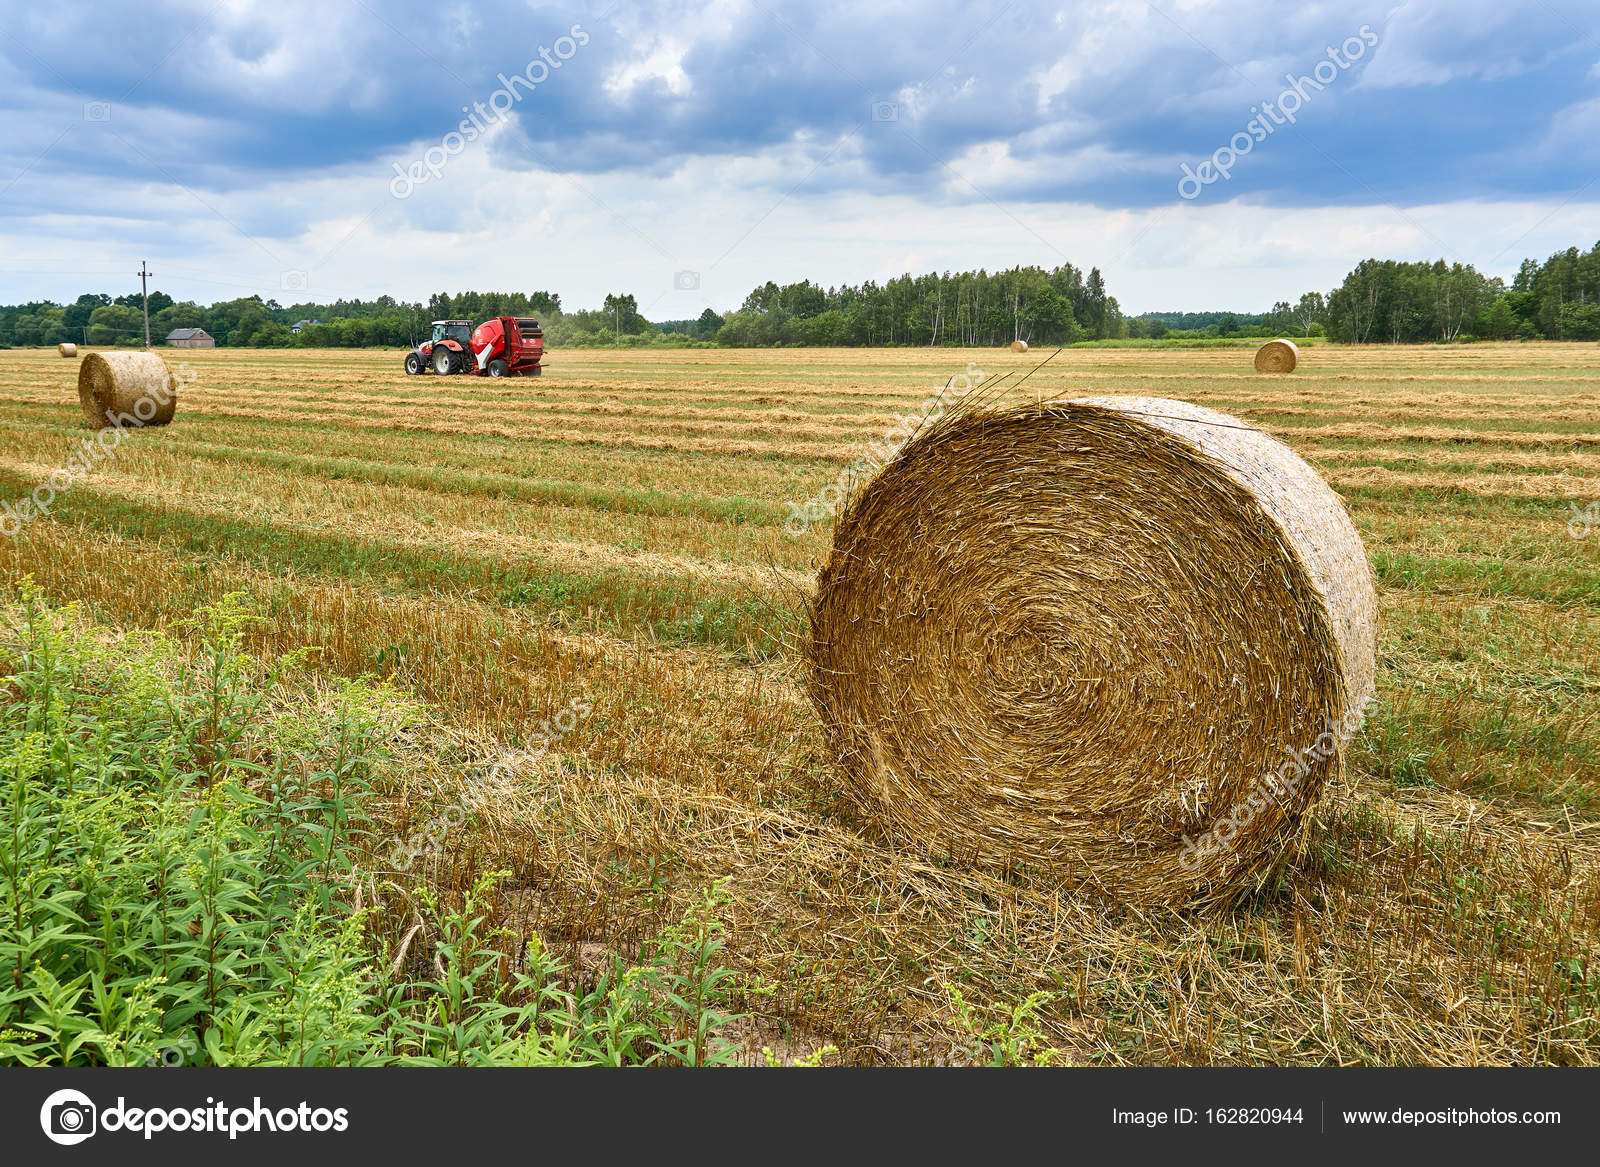 Biale, Poland - August 04, 2017: The tractor is working on the field